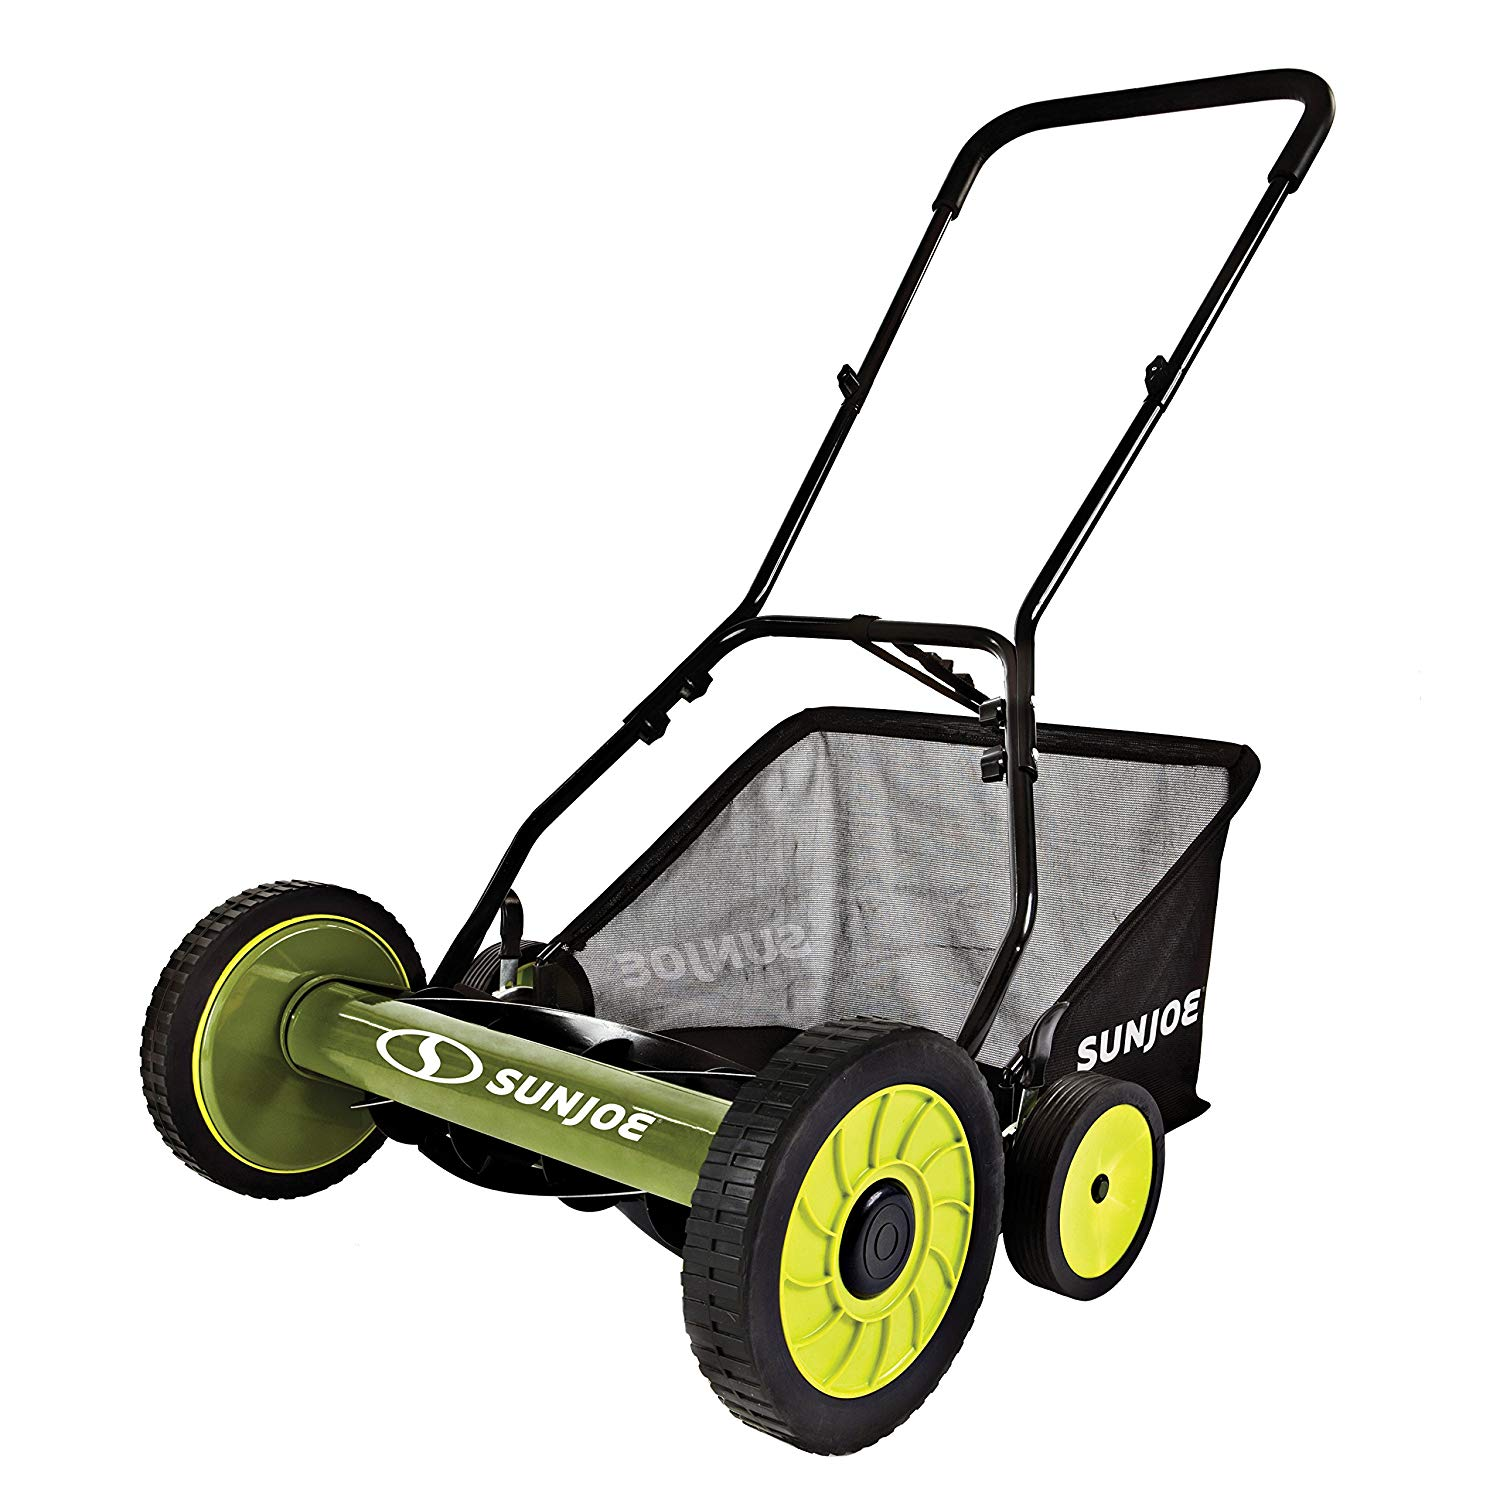 Snow Joe 20-Inch Manual Reel Mower